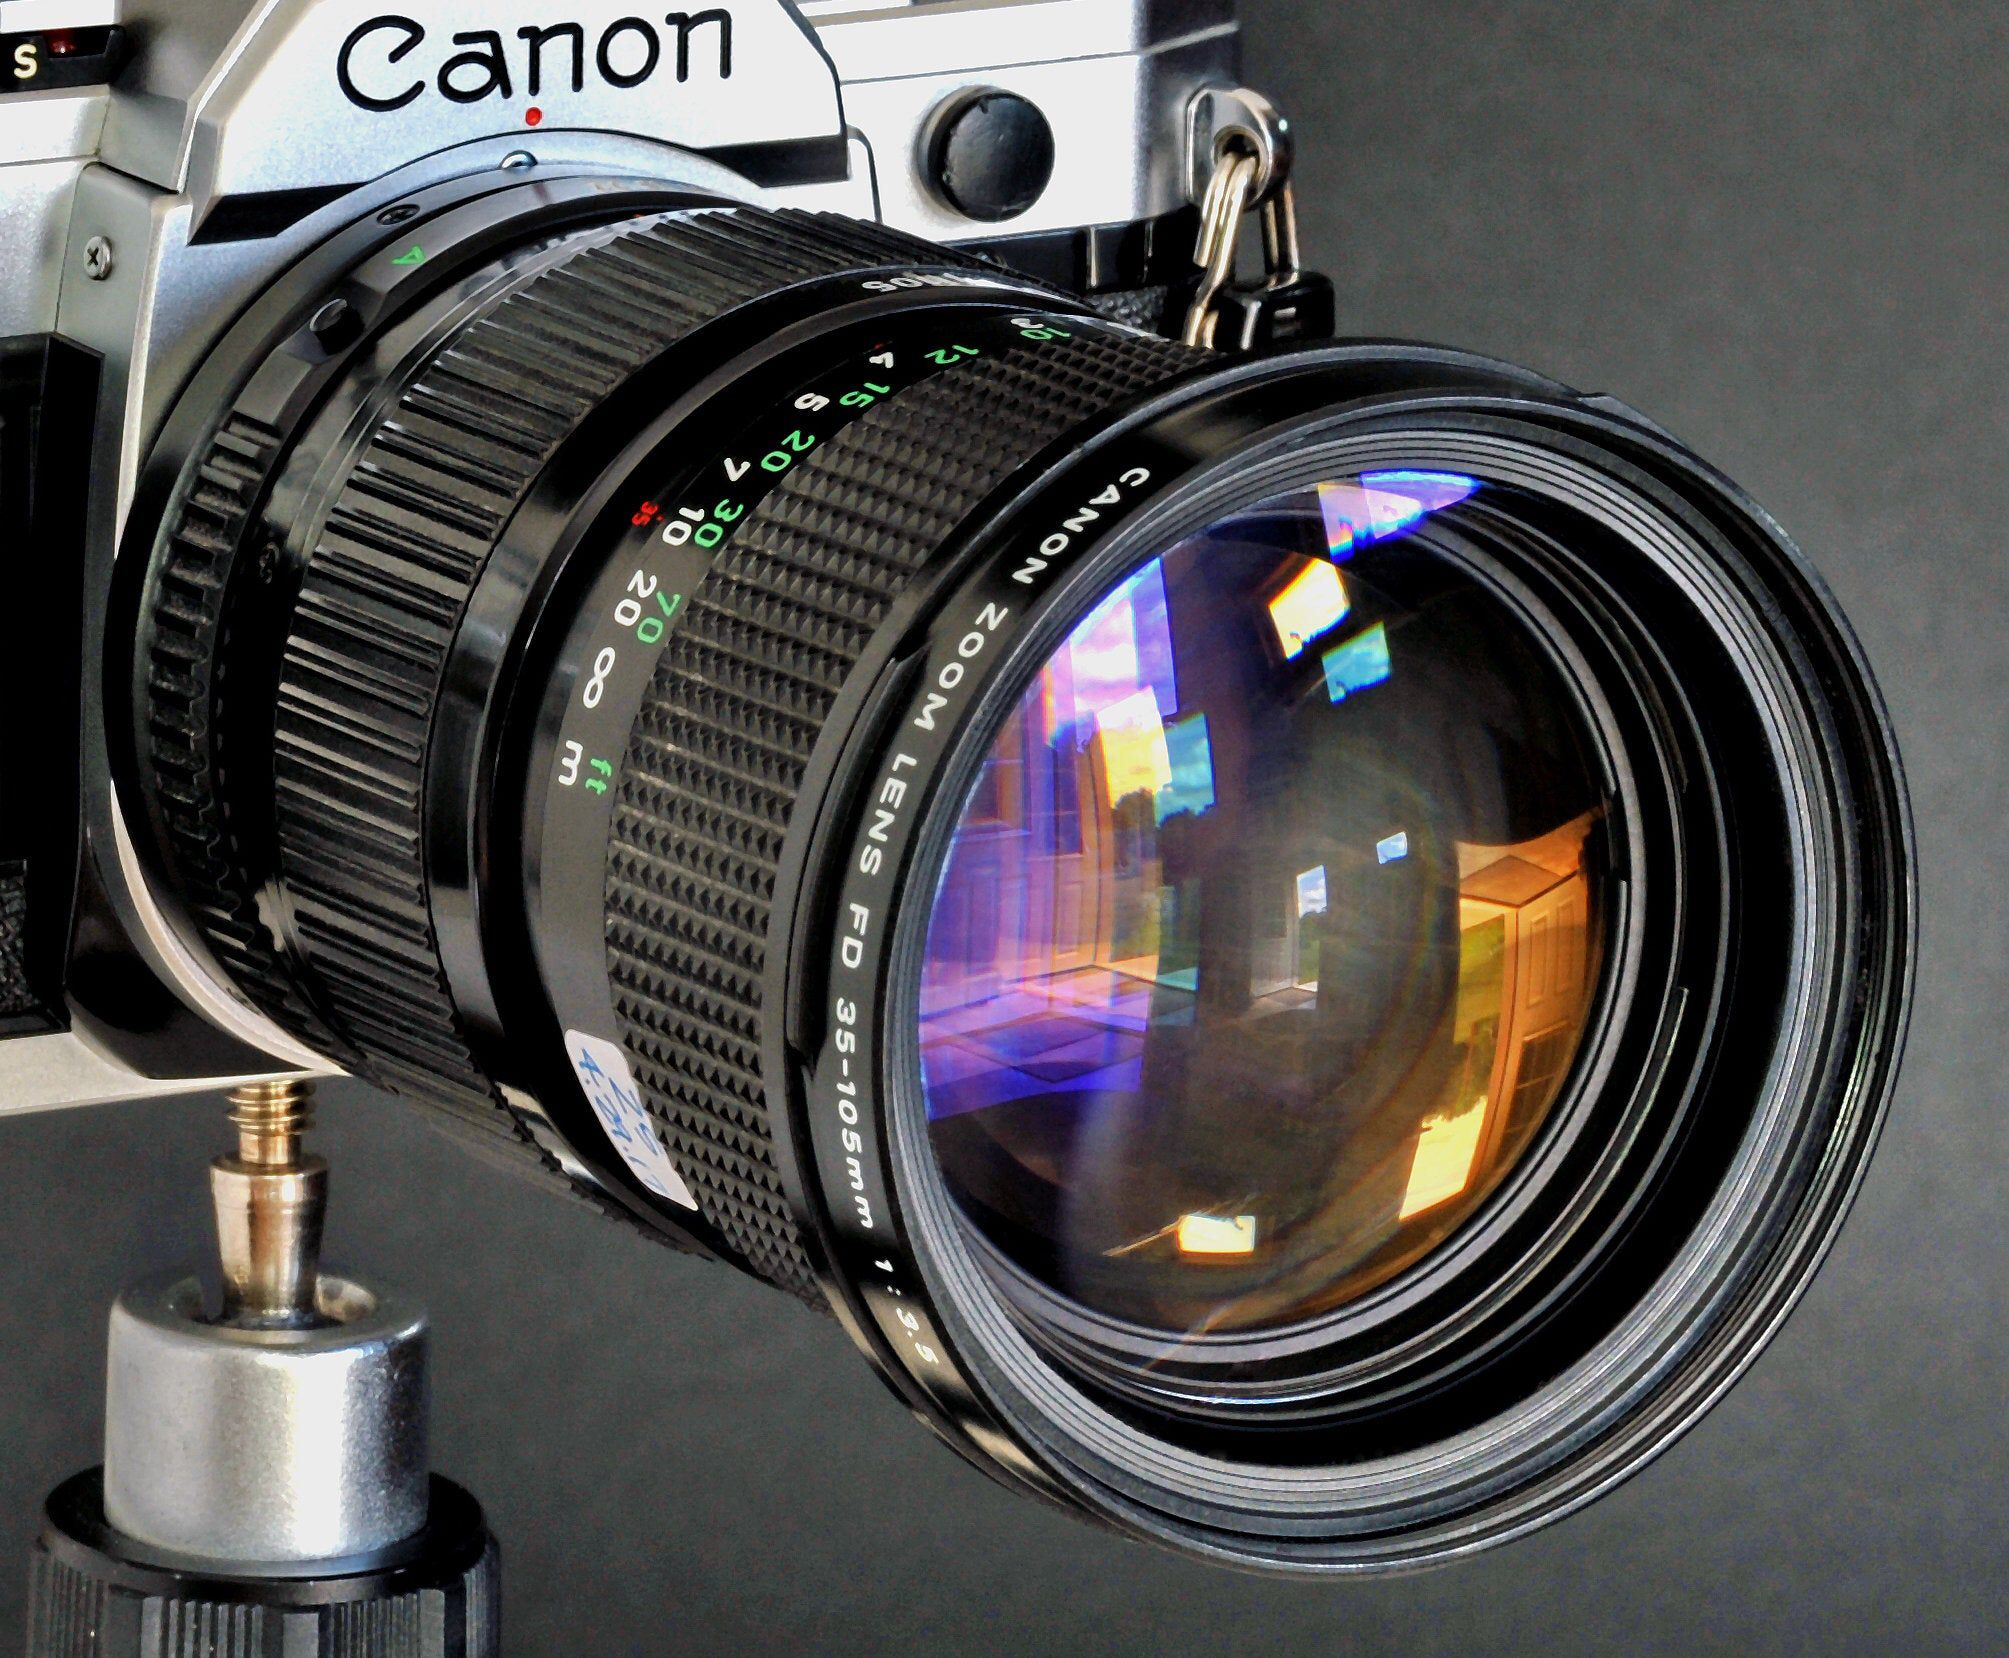 Canon Fd 35 105mm F 3 5n Macro Zoom Lens Good For Students Etsy Zoom Lens Mirrorless Camera Lens